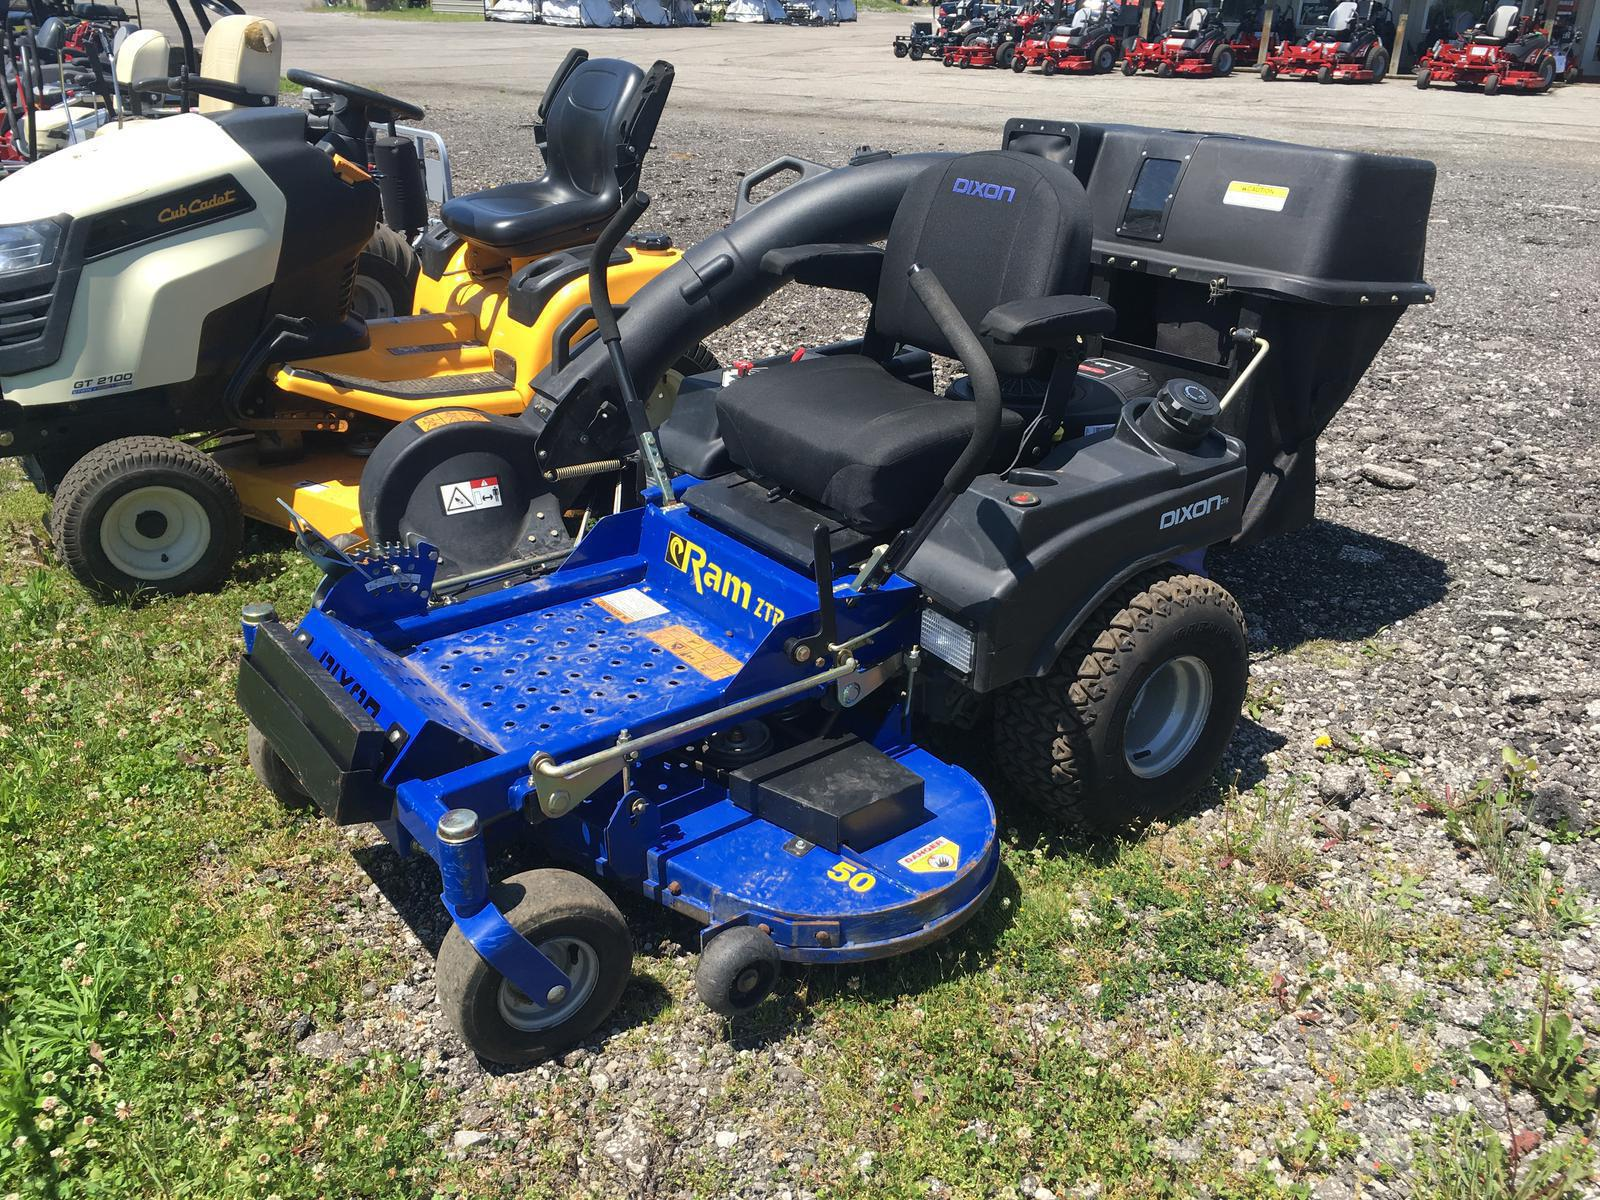 2009 Dixon Lawn Mowers RAM 50 Briggs & Stratton 26hp for sale in